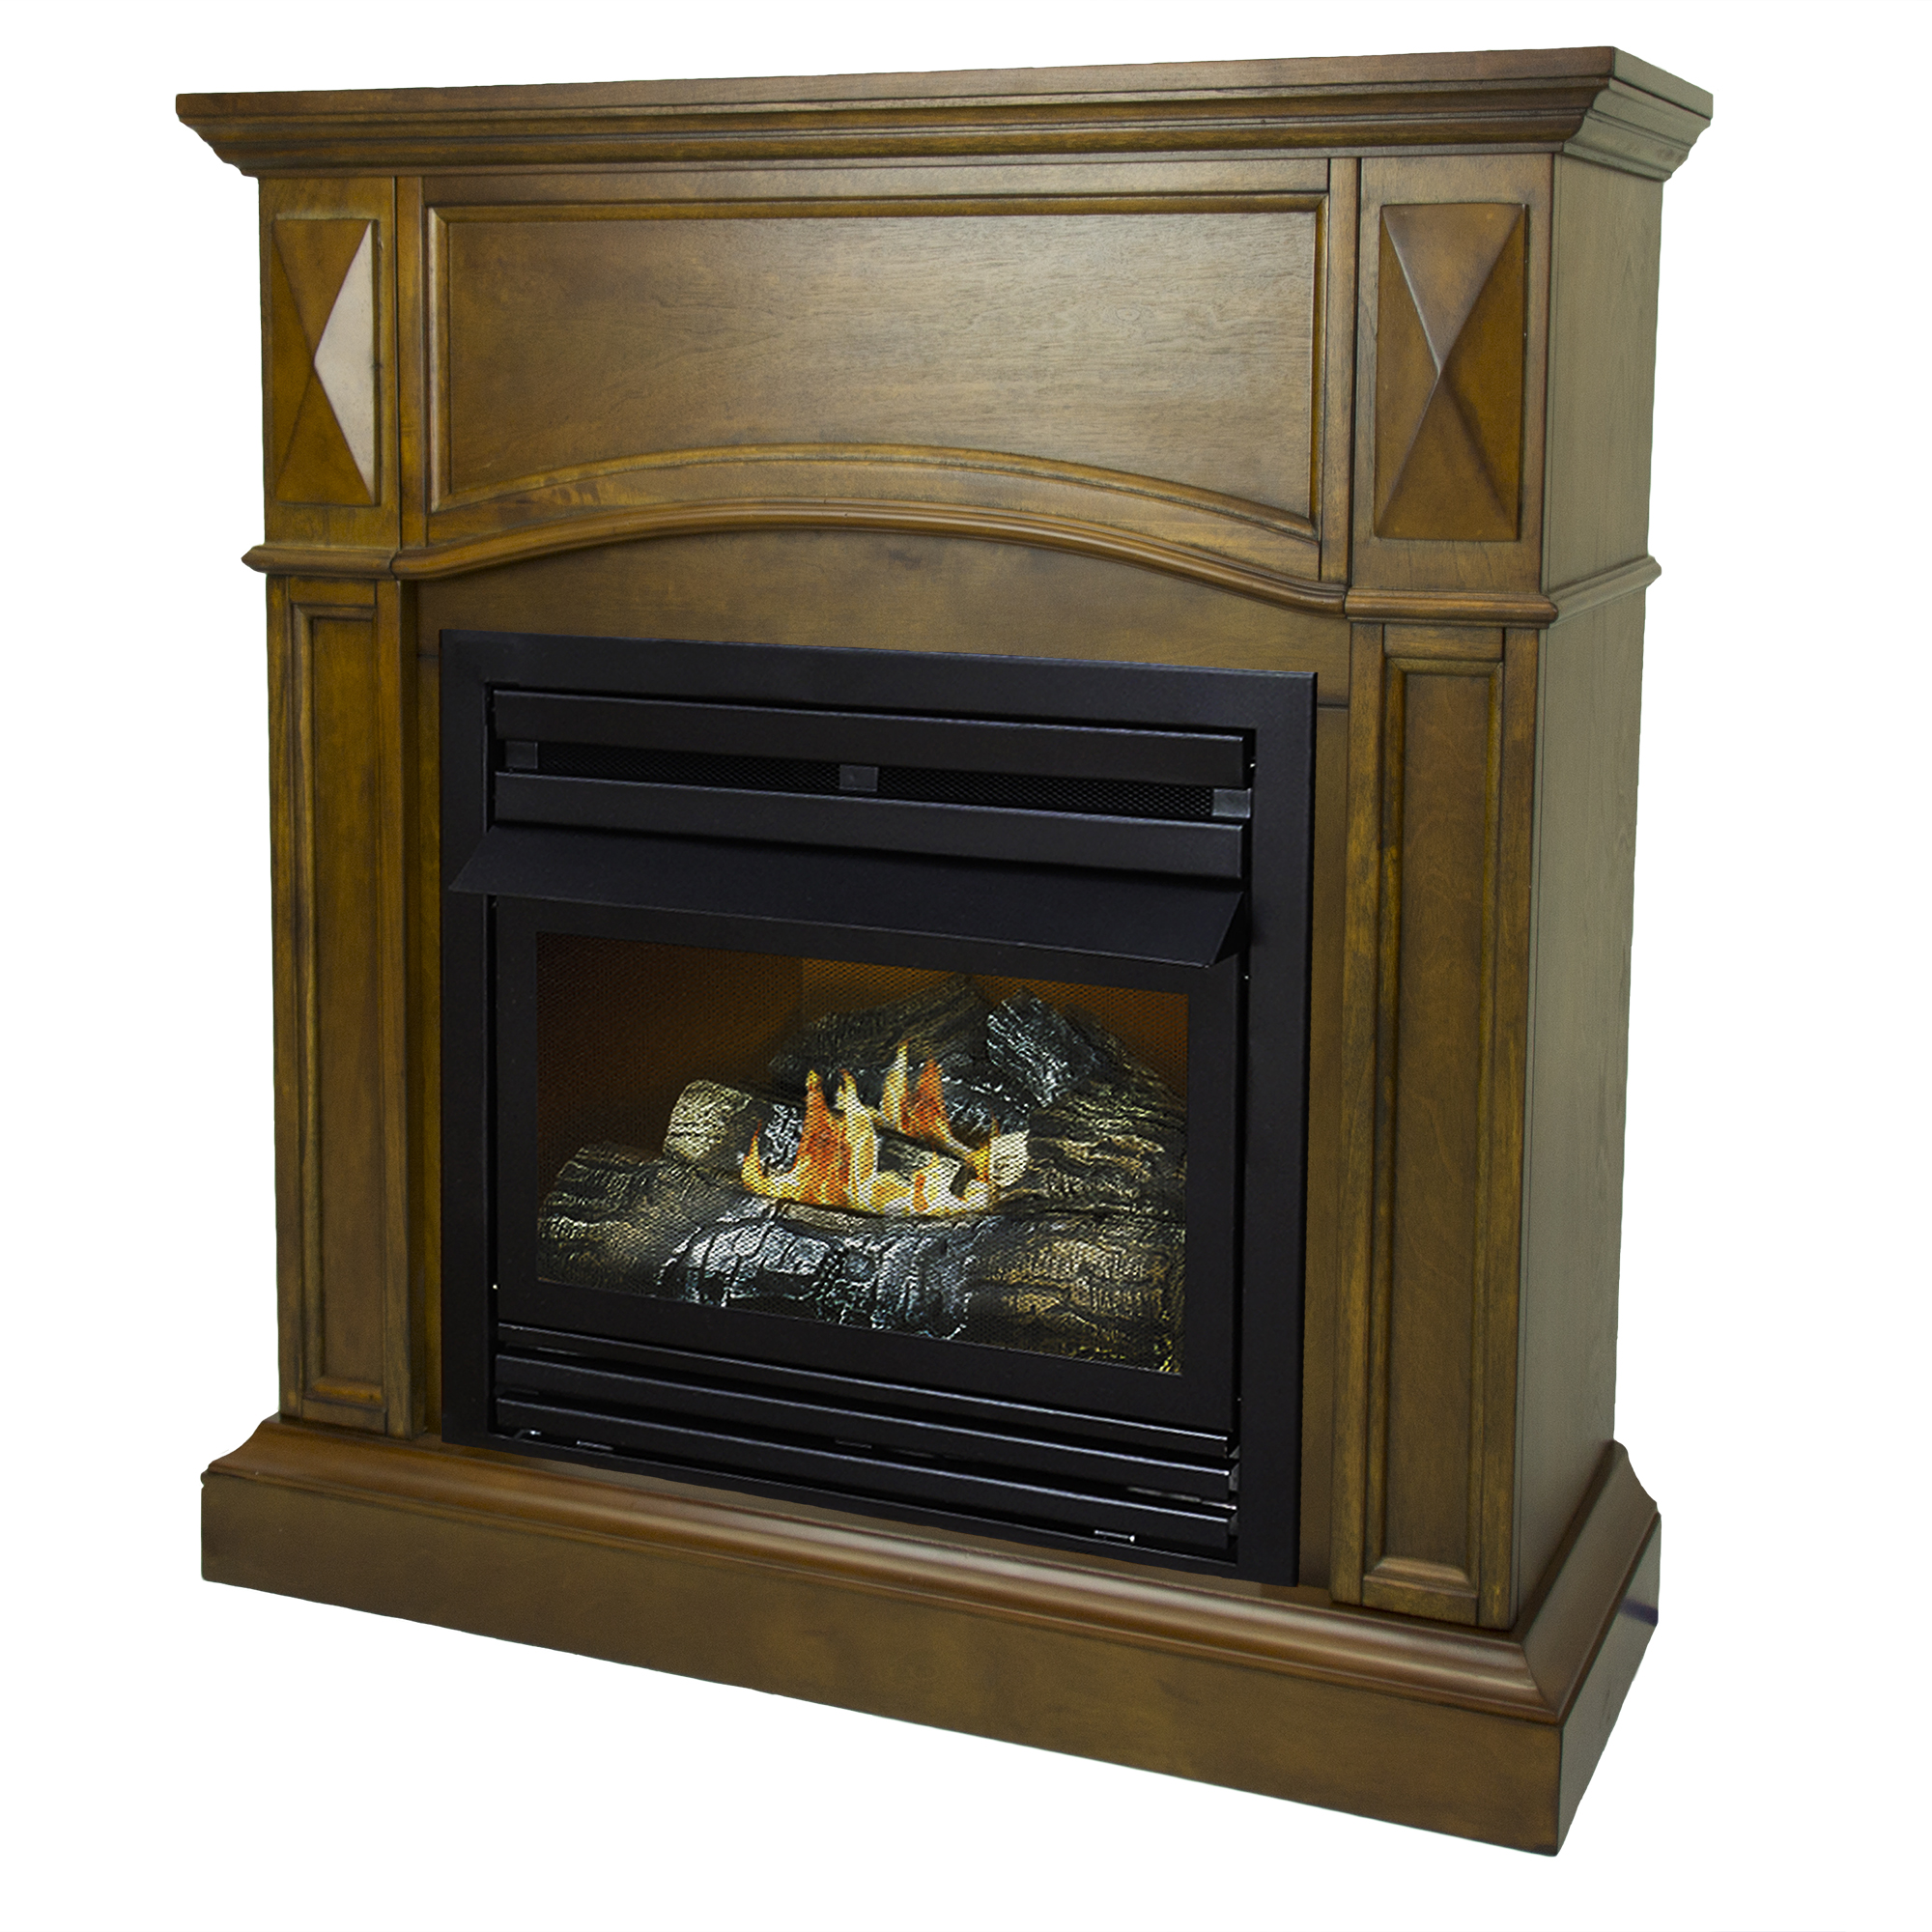 Pleasant Hearth 36 in. Liquid Propane Compact Heritage Vent Free Fireplace System 20,000 BTU